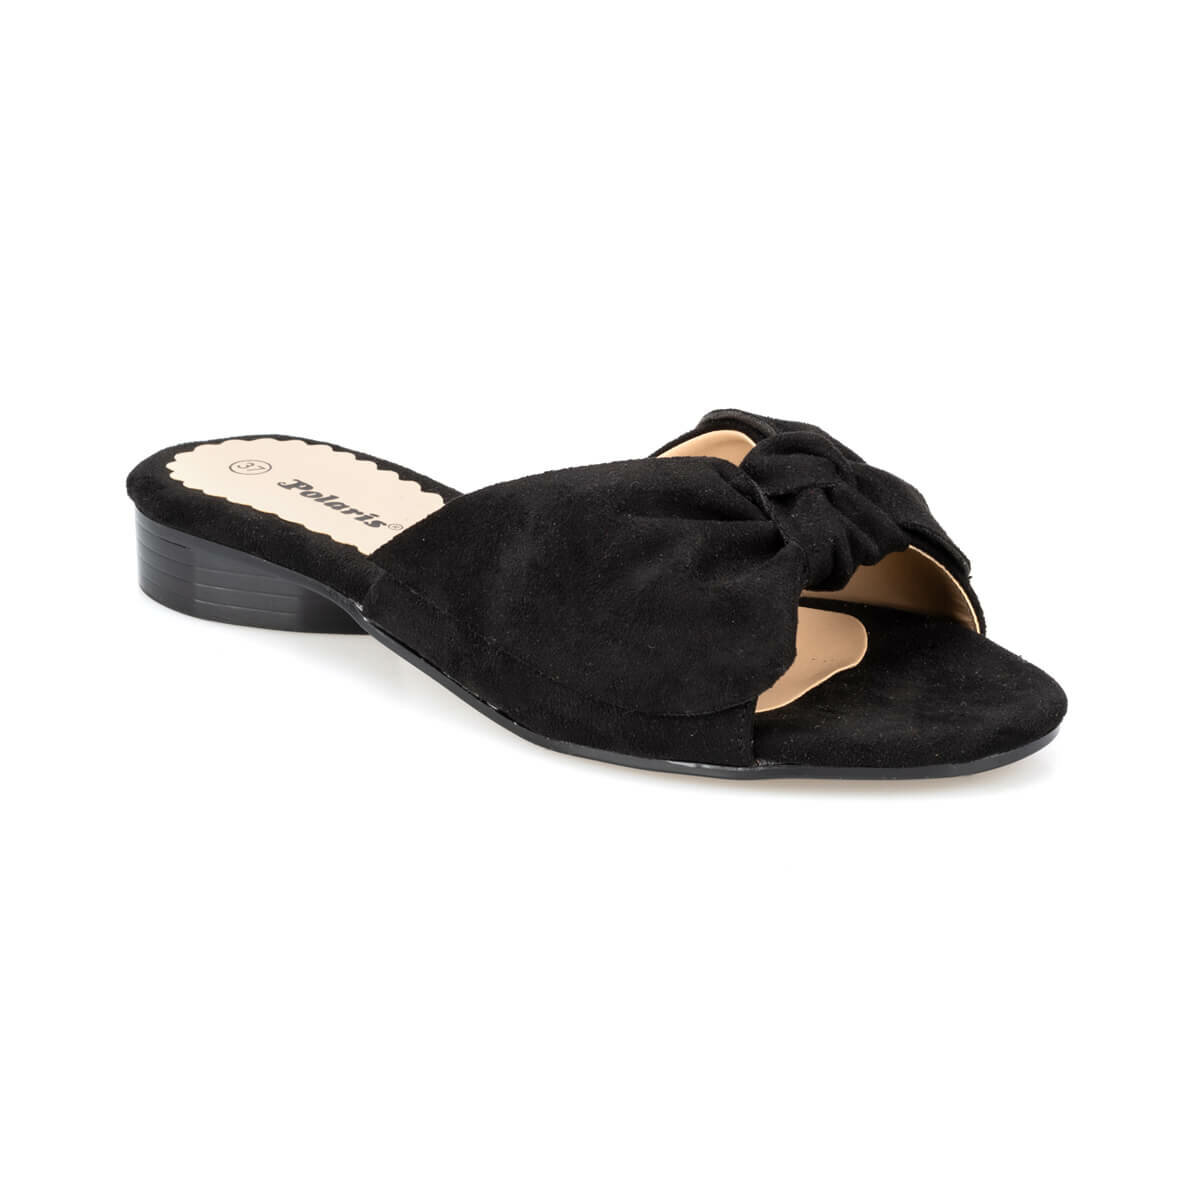 FLO 91.313279.Z Black Female Slippers Polaris